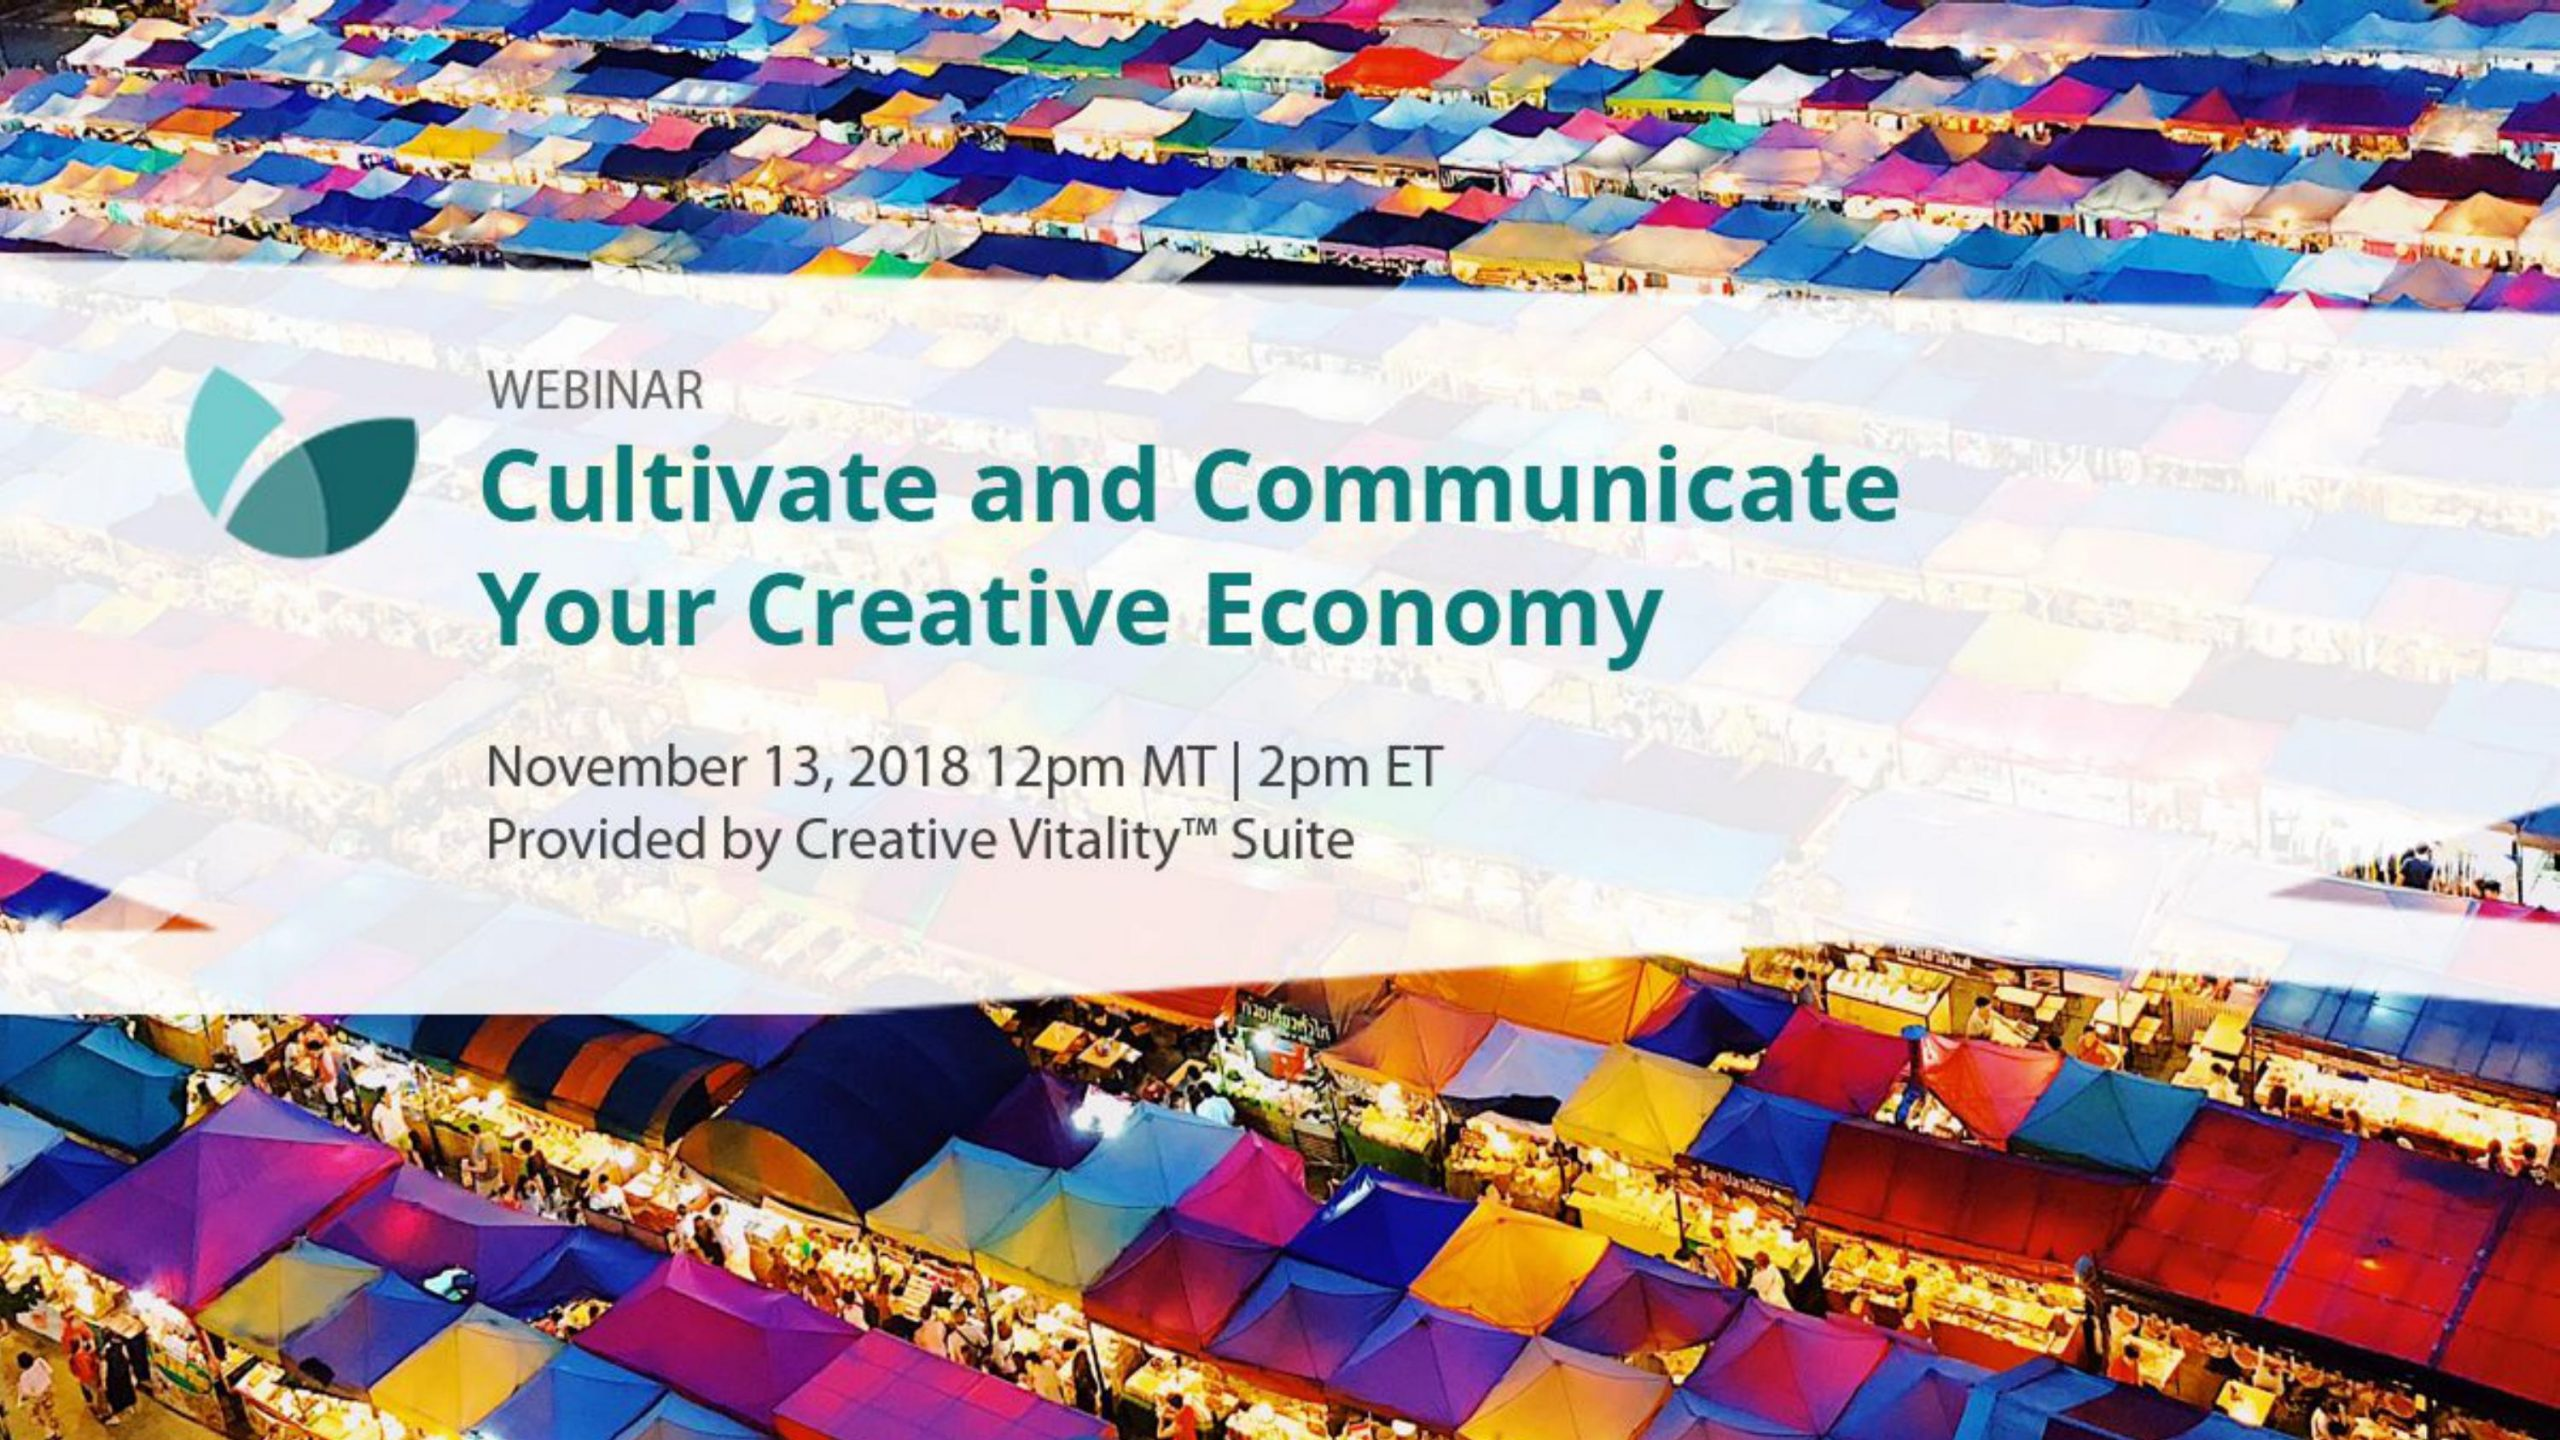 Blues, purple, yellow and green lights in the background with foreground text that says Cultivate and communicate your creative economy